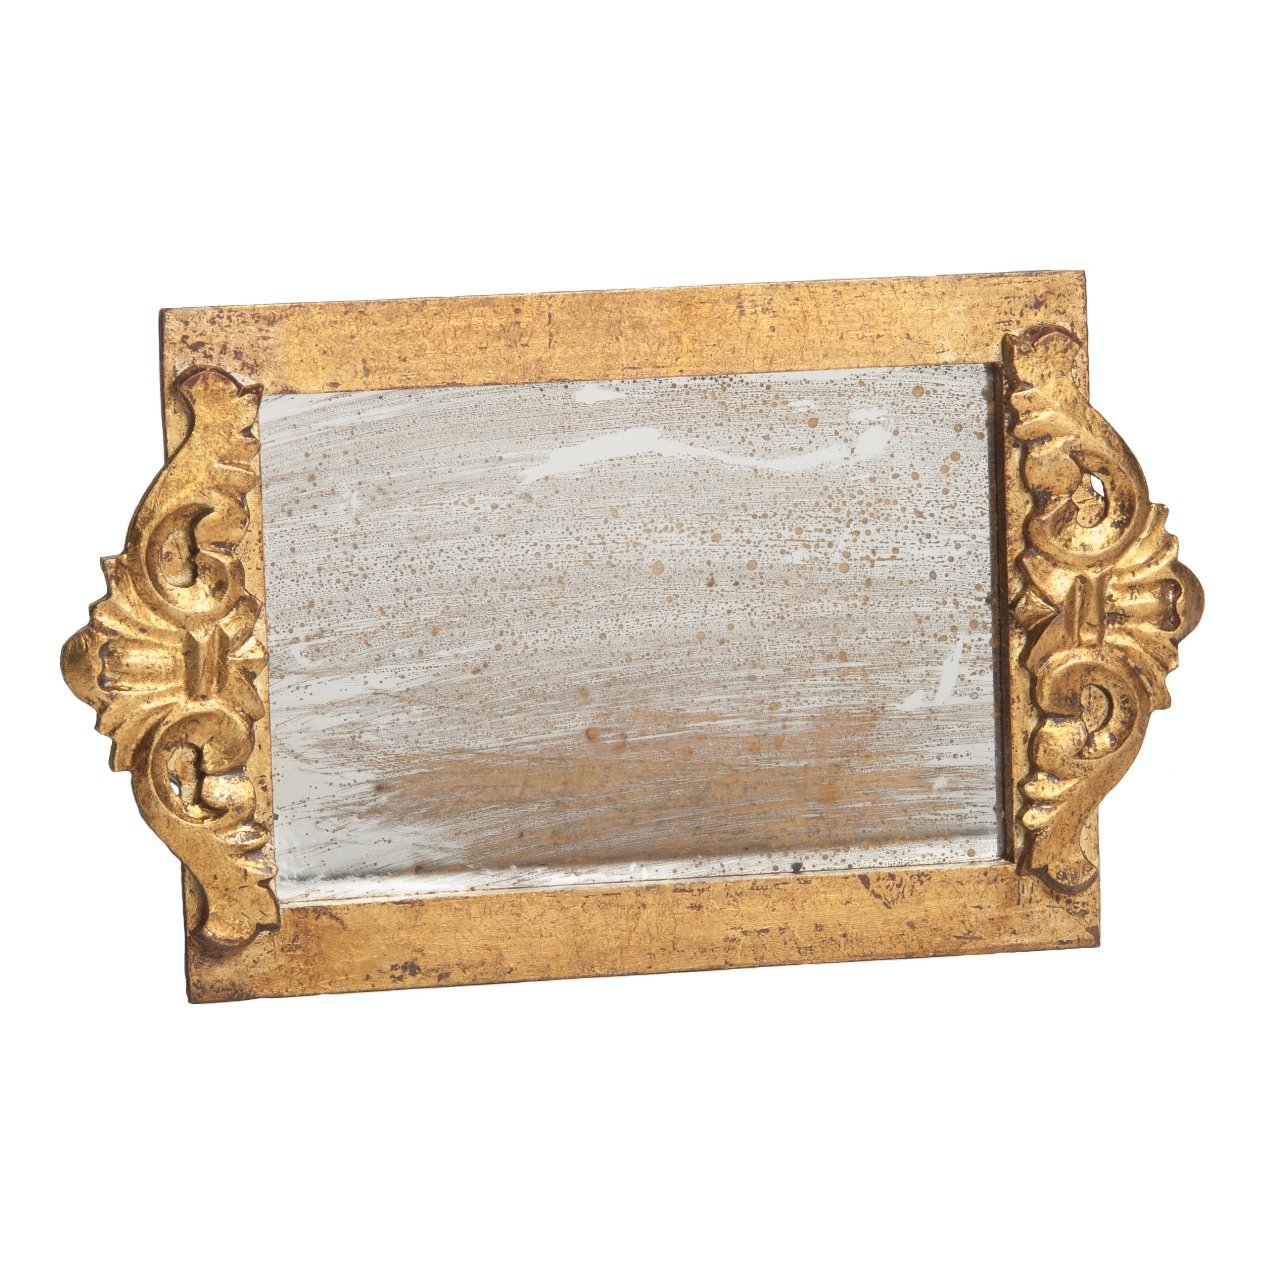 Amazon: Abigails Mirror Vanity Decorative Tray, Silver Antiqued: Home &  Kitchen